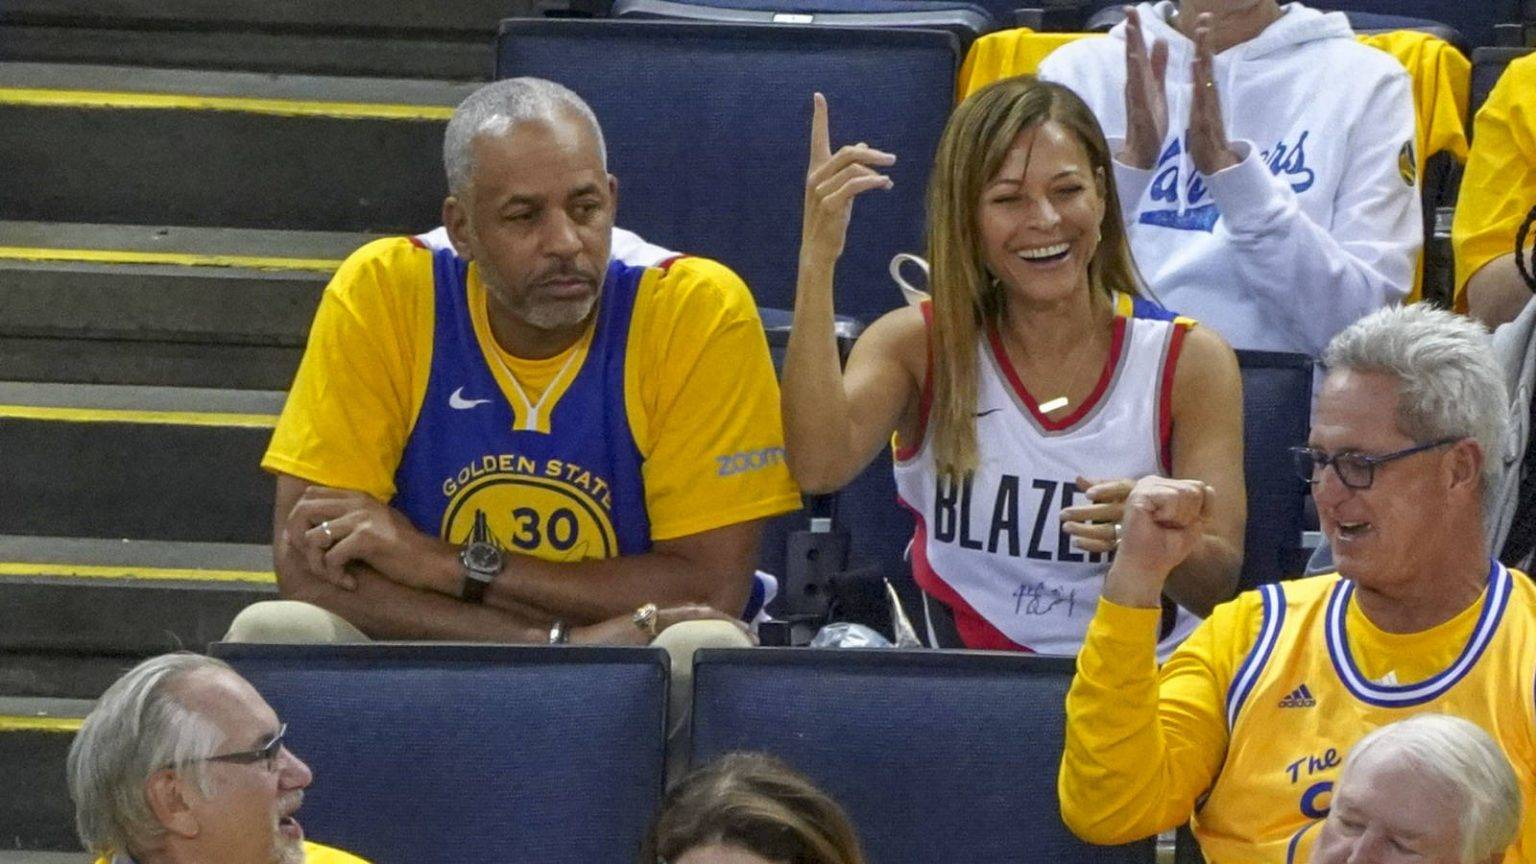 Dell and Sonya Curry, parents of Stephen Curry and Seth Curry